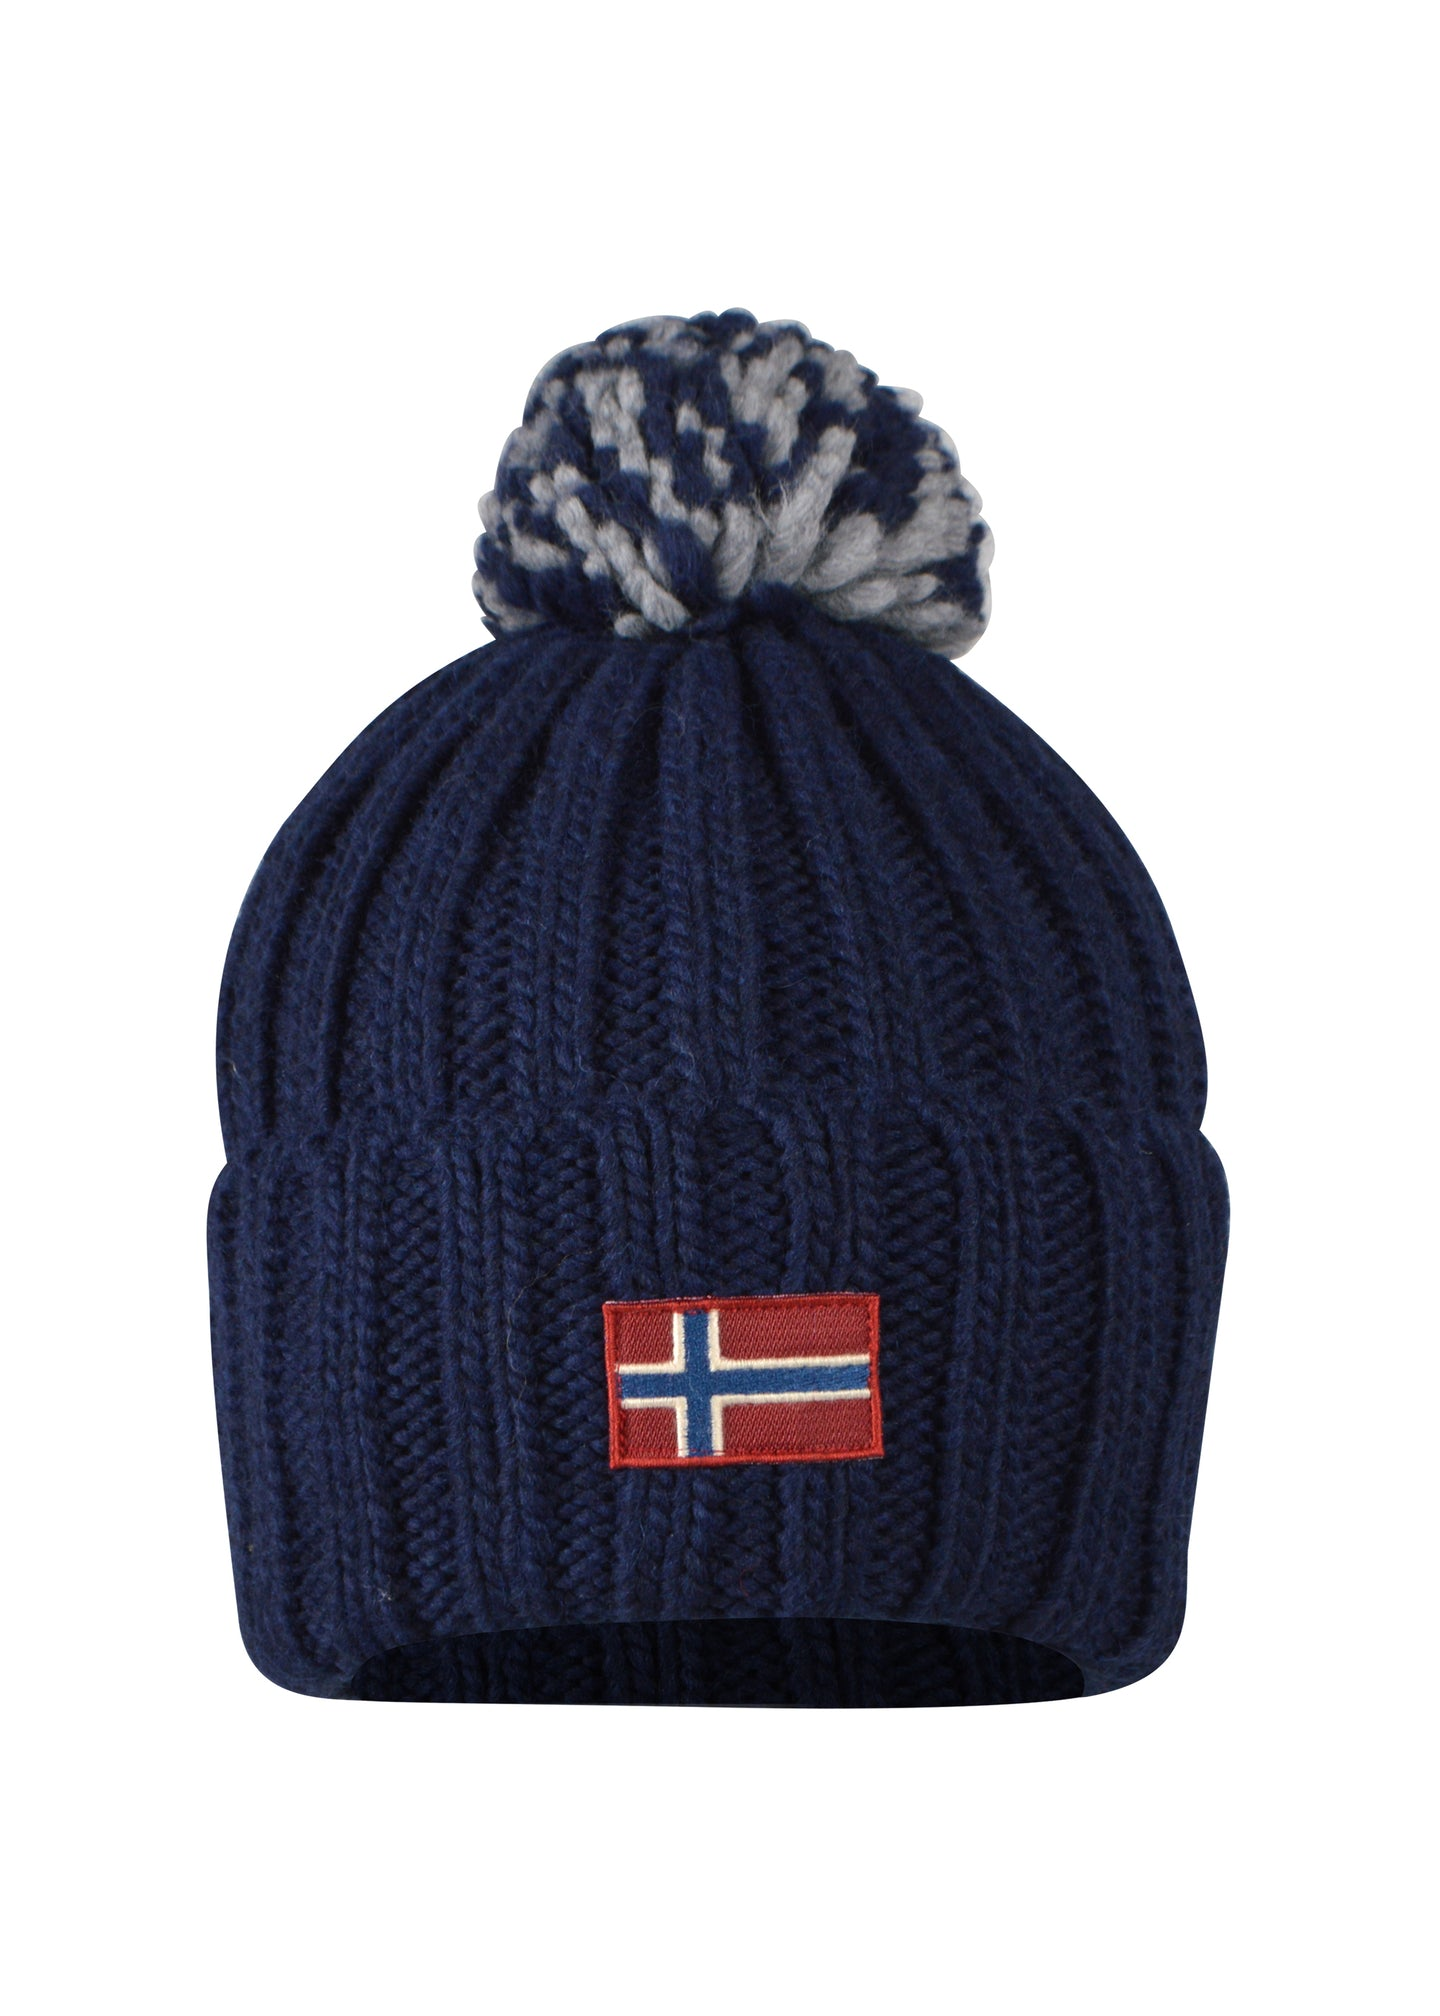 Napapijri- Ski knit Bobble Hat . One Size Semiury- 100321 - Navy